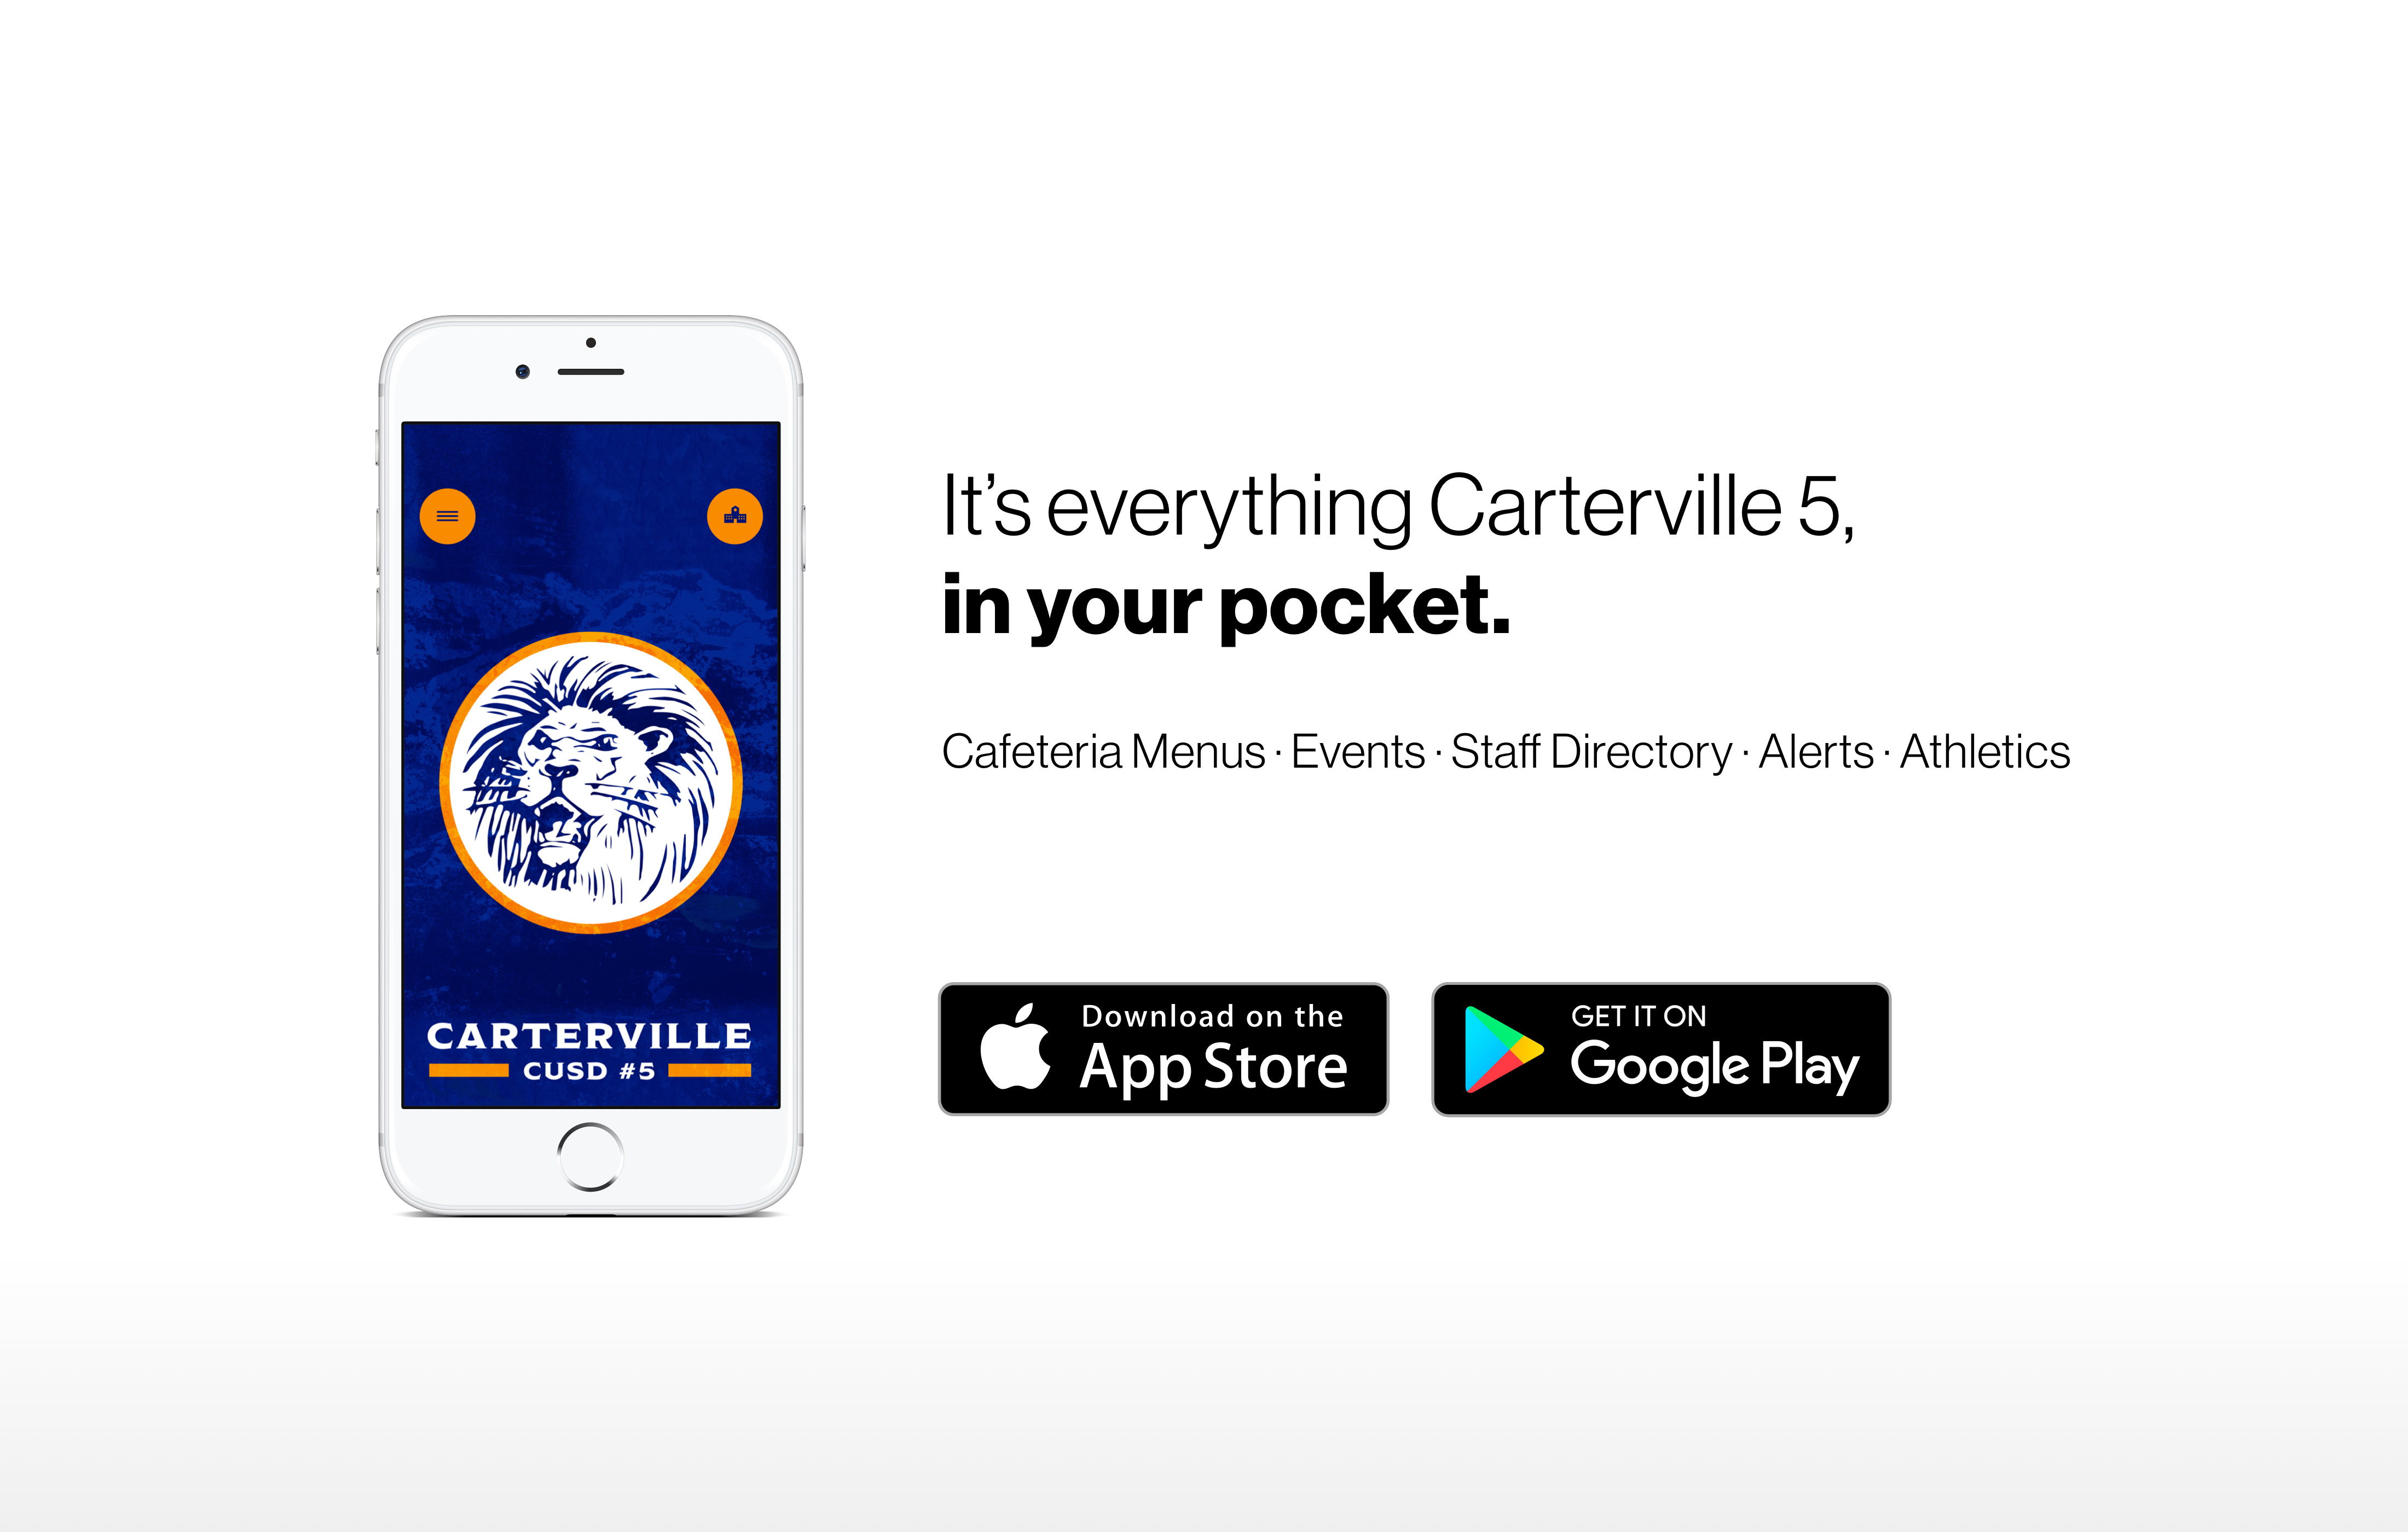 It's everything Carterville 5, in your pocket.